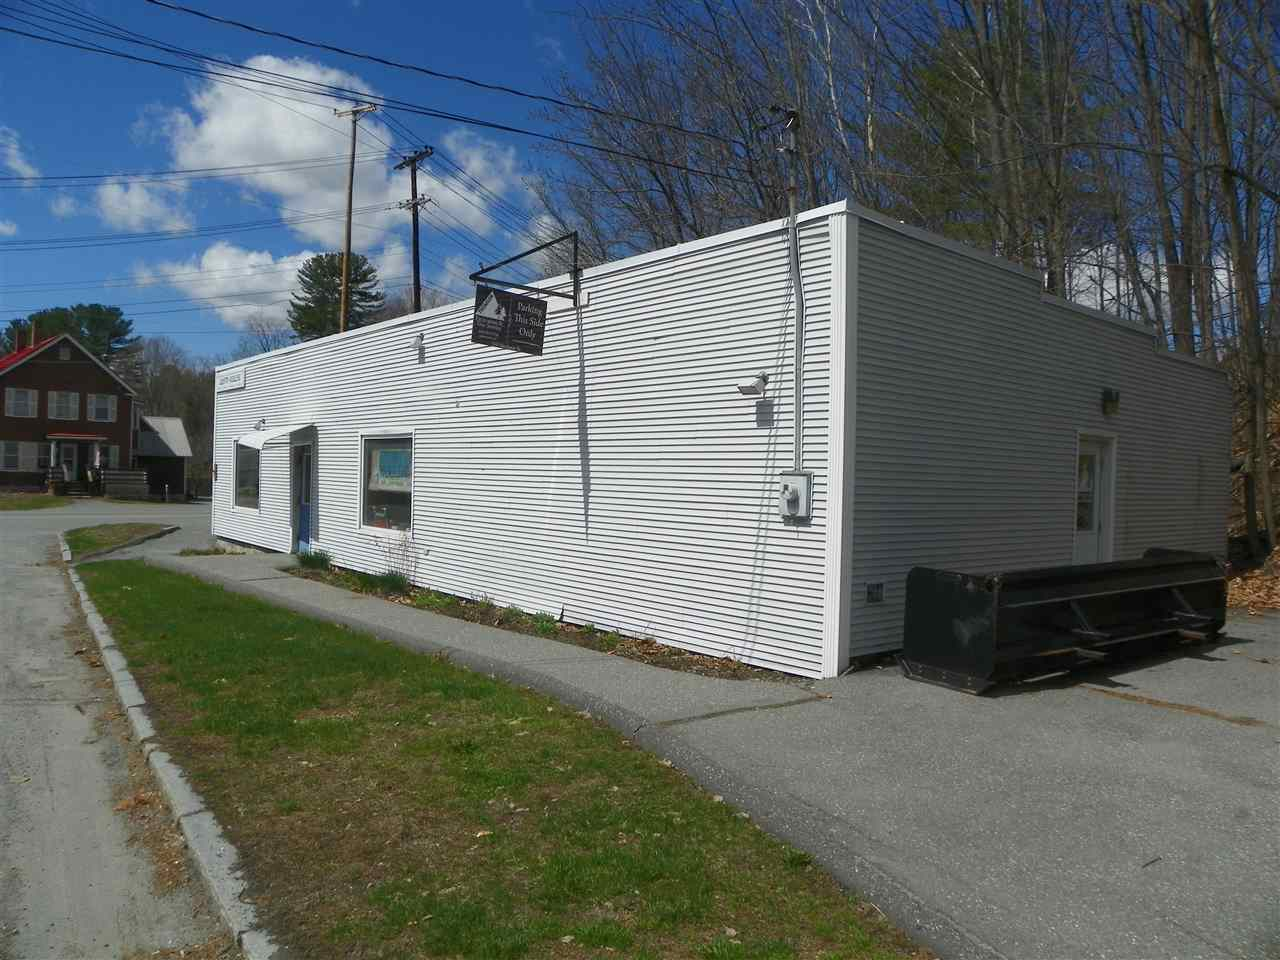 160 Mechanic Street, Lebanon, NH 03766